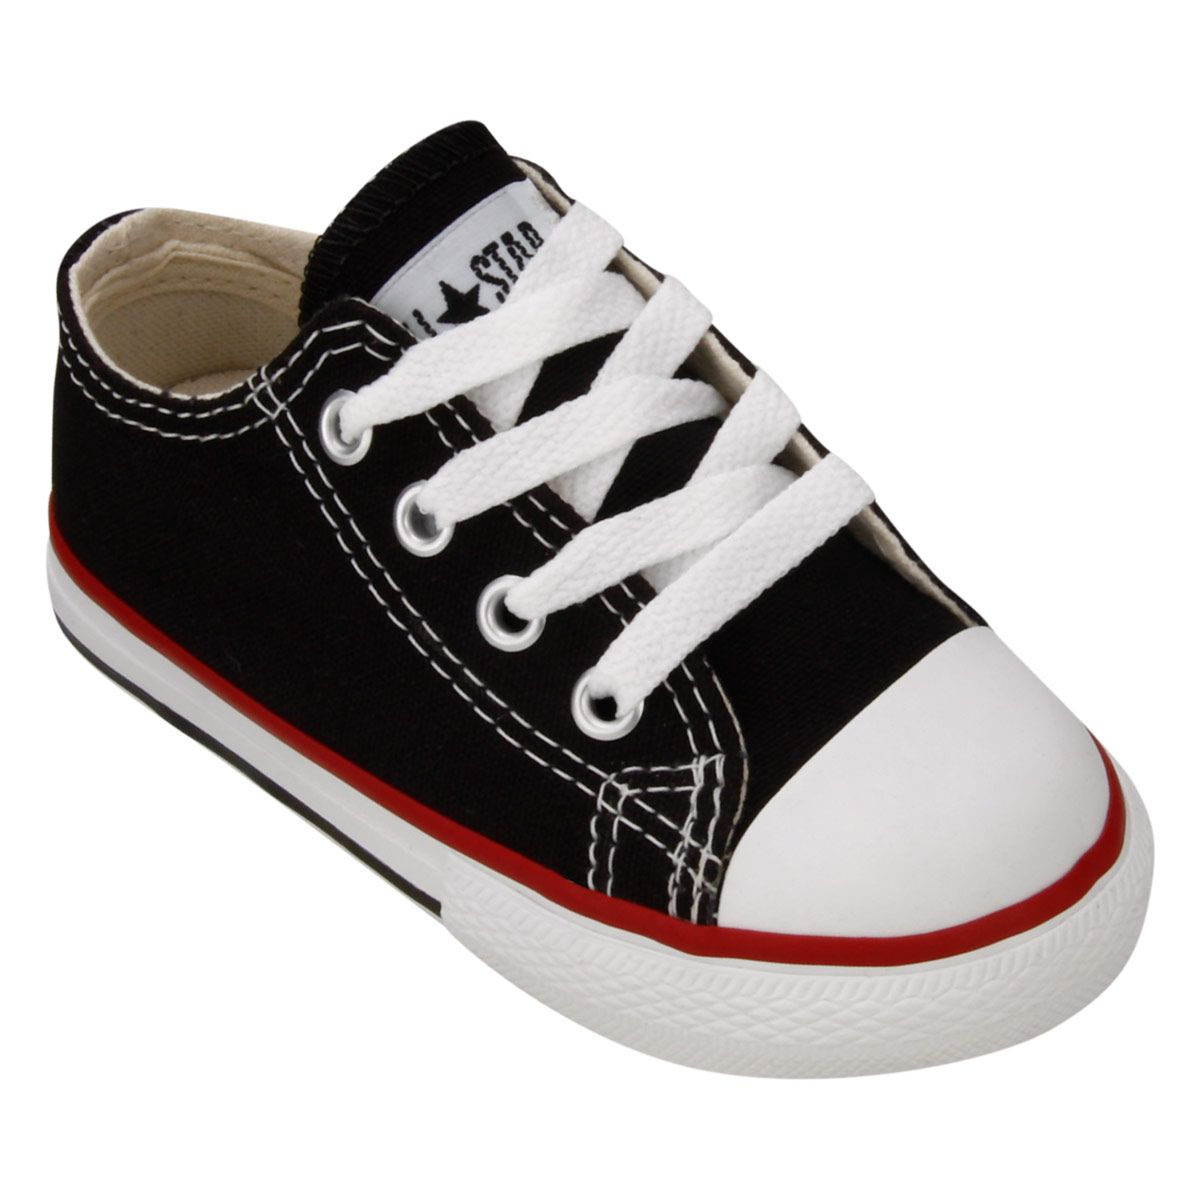 Tênis Converse All Star Ct As Core Ox Infantil Converse All Star Converse Tênis Converse